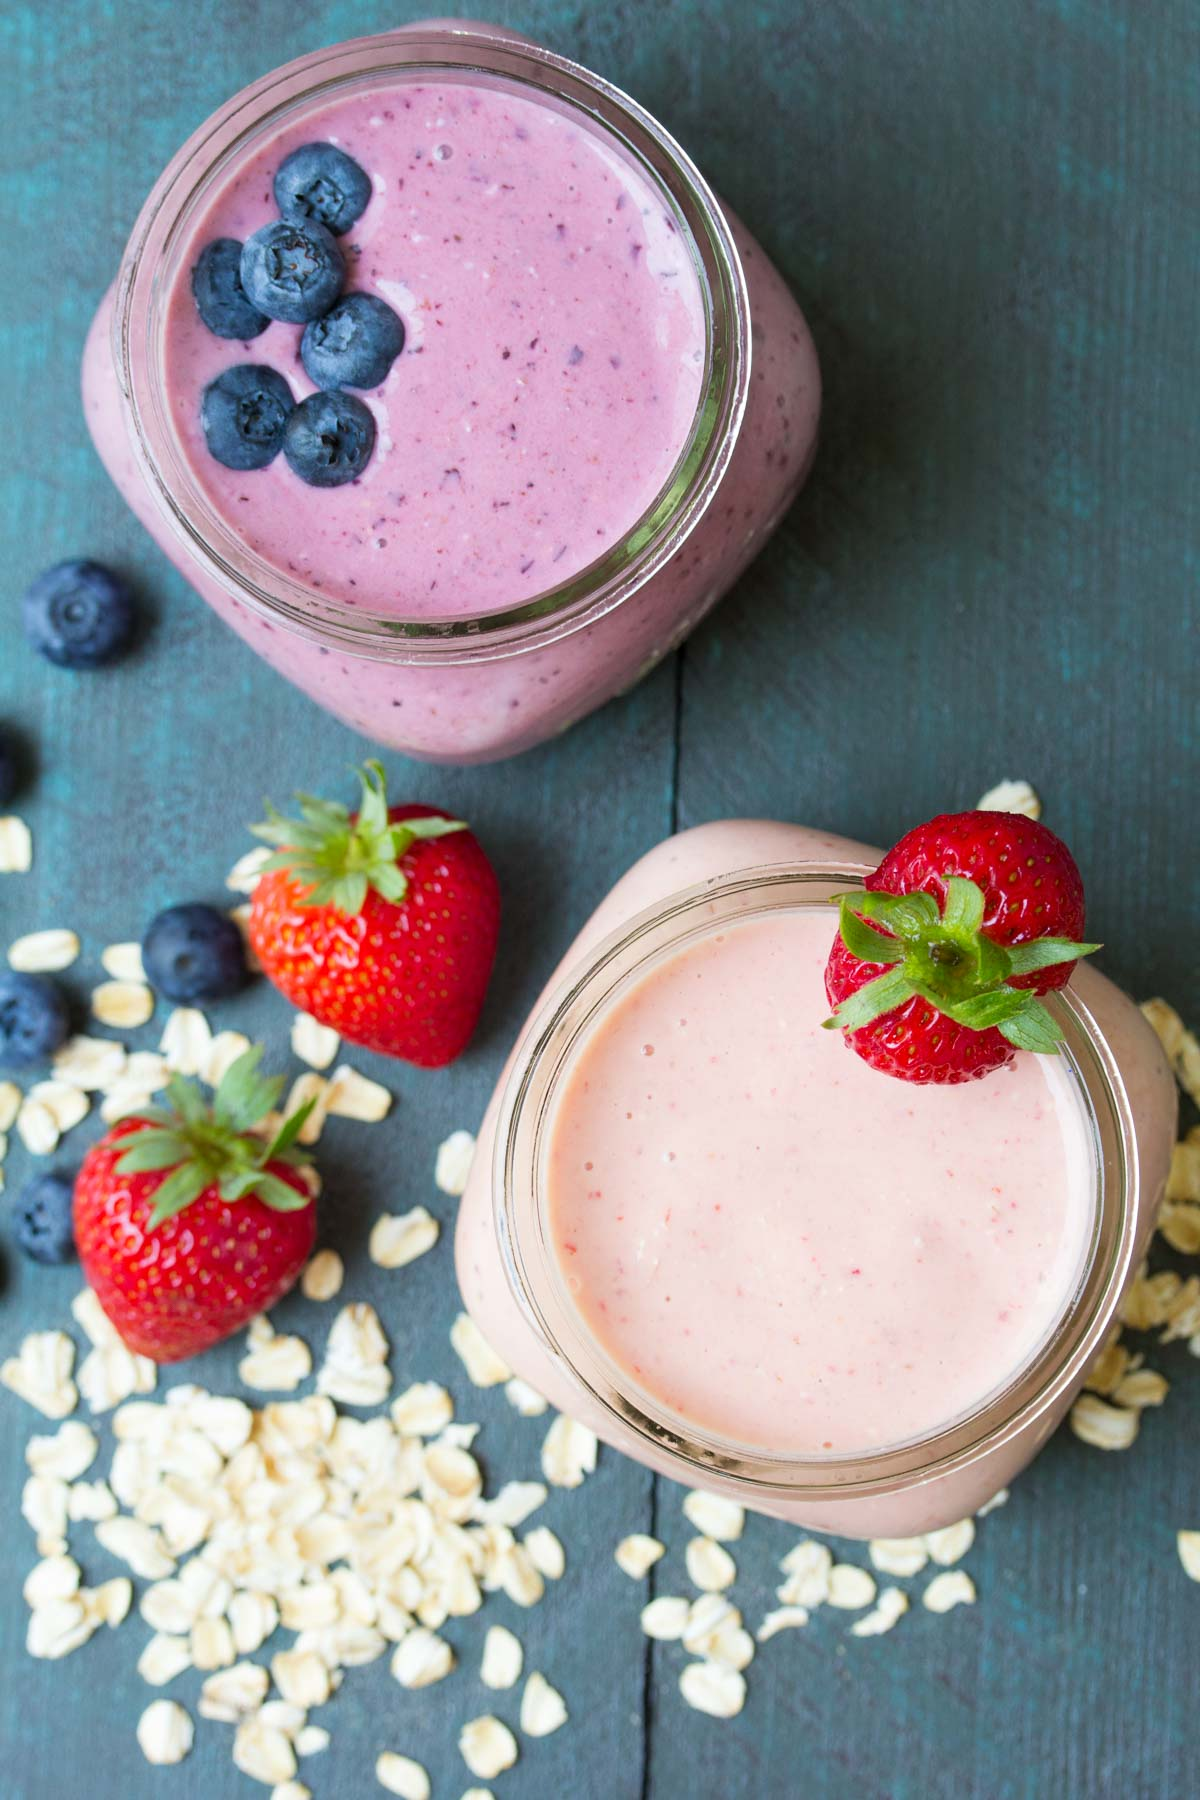 Kid Favorite Oatmeal Breakfast Smoothie! (Blueberry or Strawberry) A healthy breakfast with protein and fiber, perfect for busy back to school mornings!